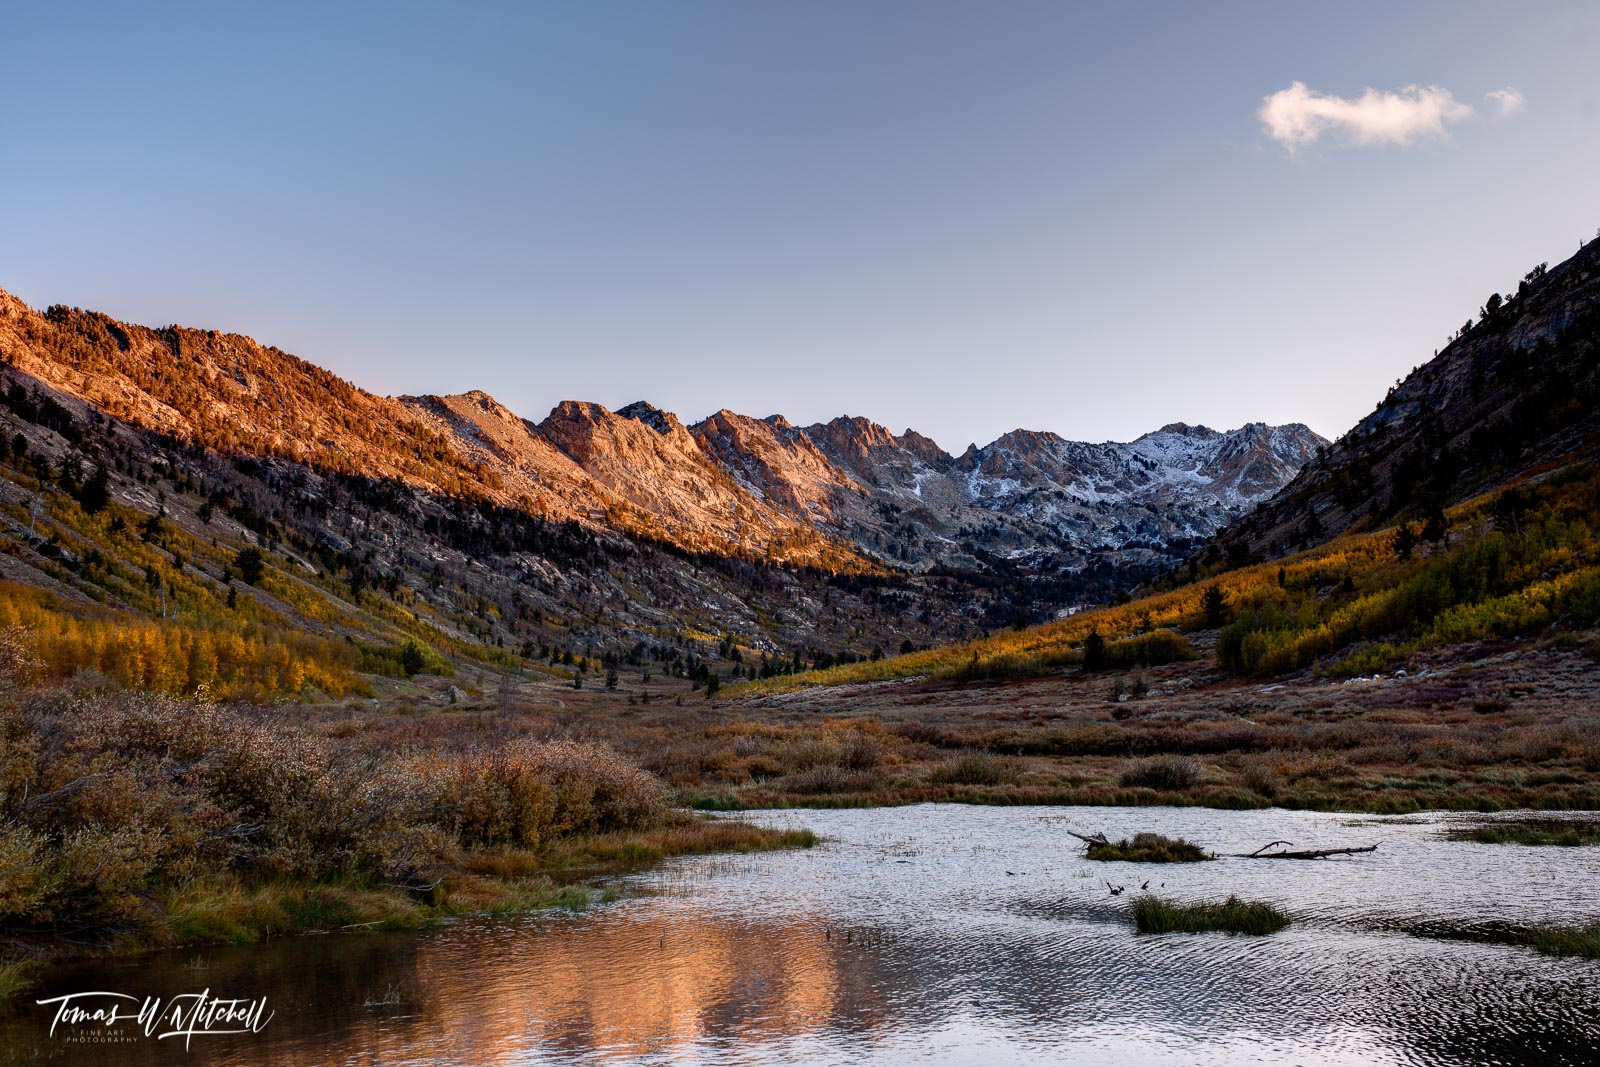 limited edition, museum grade, lamoille canyon, nevada, happy cloud, fall colors, snow, peaks, sky, mountains, water, photograph, aspen trees, bob ross, photo